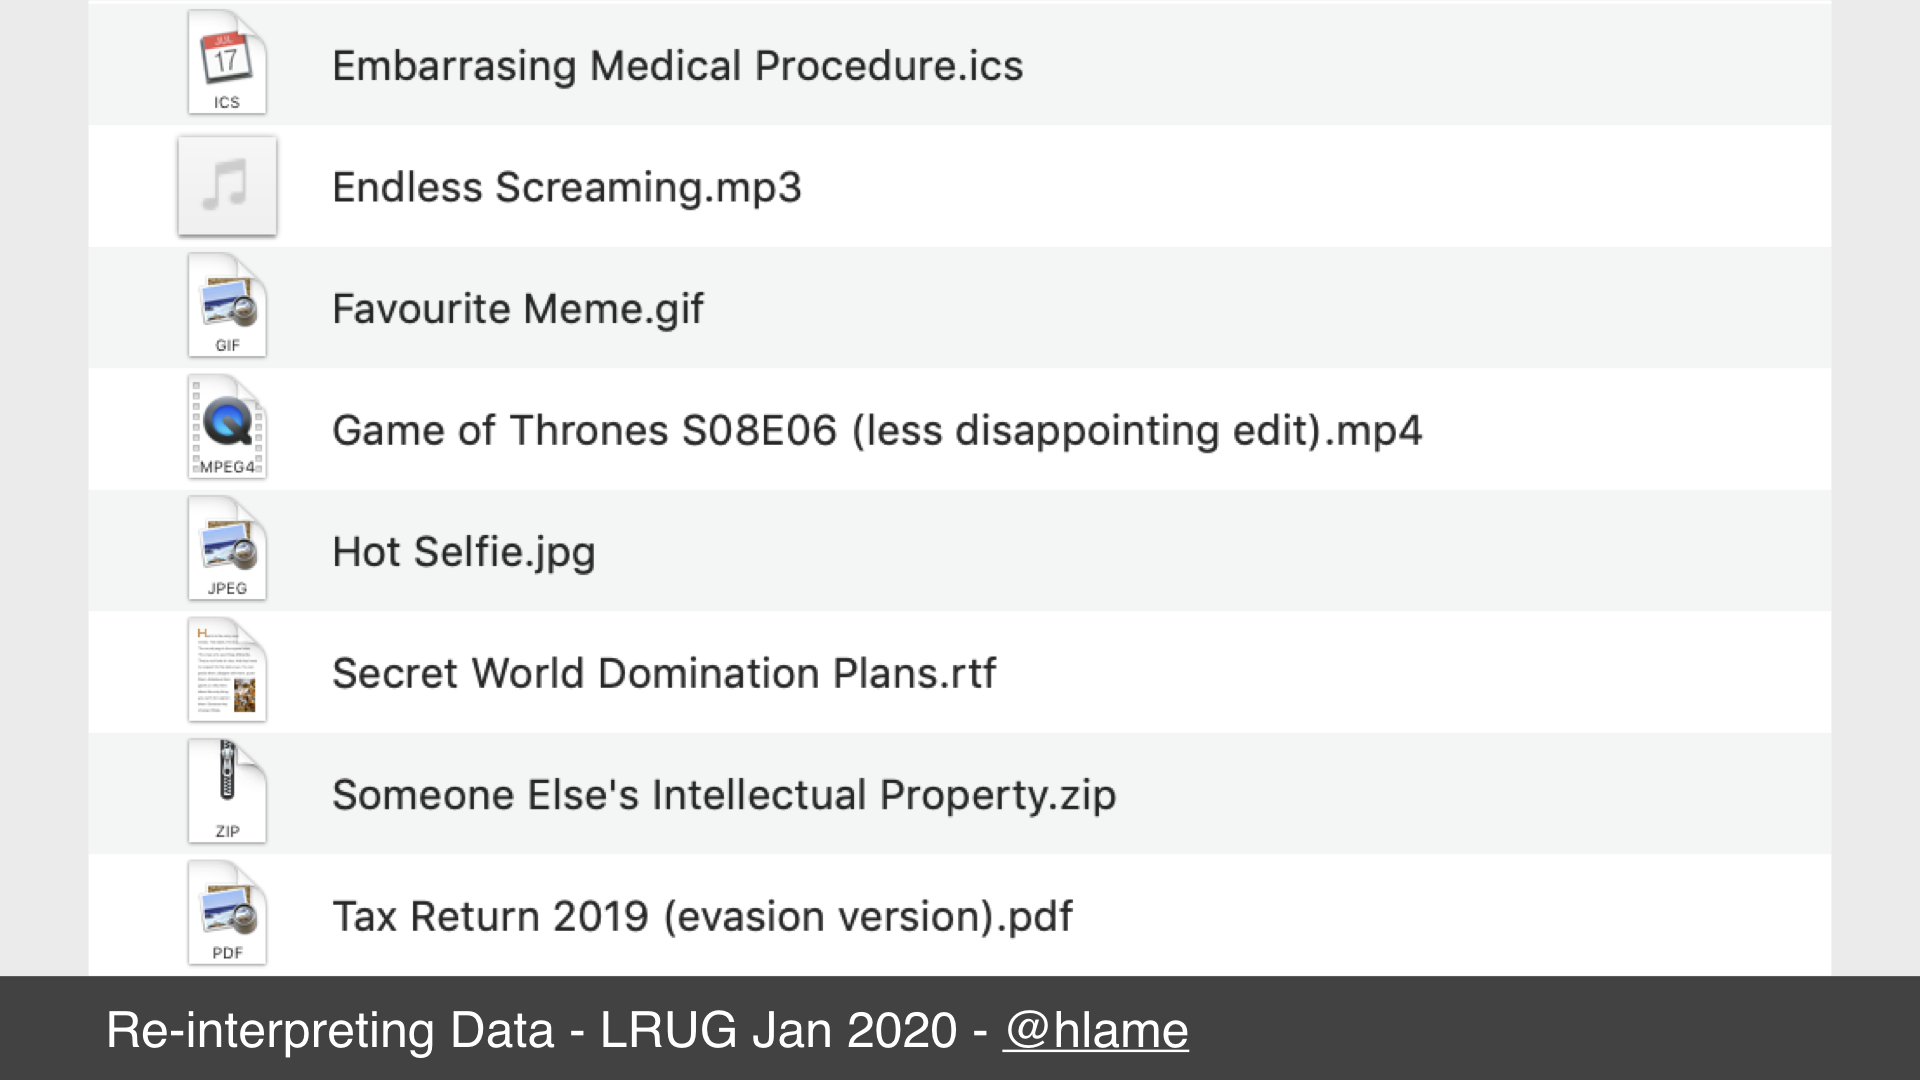 Screenshot of macos finder window showing some example filenames. text: Embarrassing Medial Procedure.ics; Endless Screaming.mp3; Favourite Meme.gif; Game of Thrones S08E06 (less disappointing edit).mp4; Hot Selfie.jpg; Secret World Domination Plans.rtf; Someone Else's Intellectual Property.zip; Tax Return 2019 (evasion version).pdf